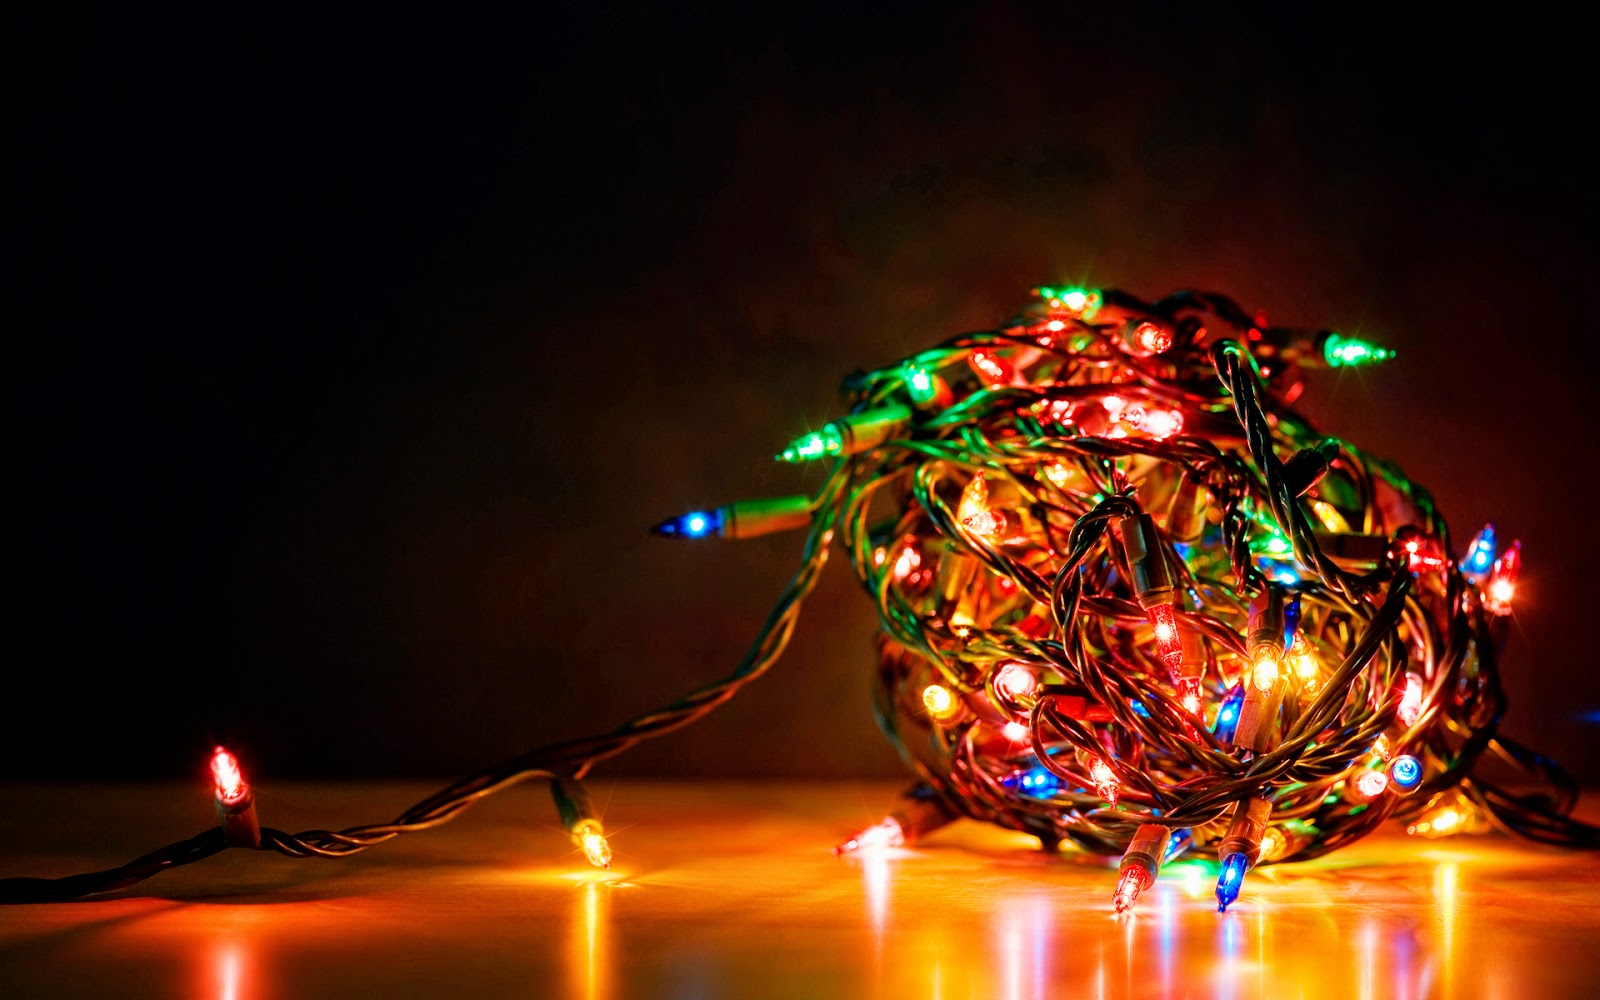 Remember to turn off your Christmas tree lights to save electricity and avoid a fire!